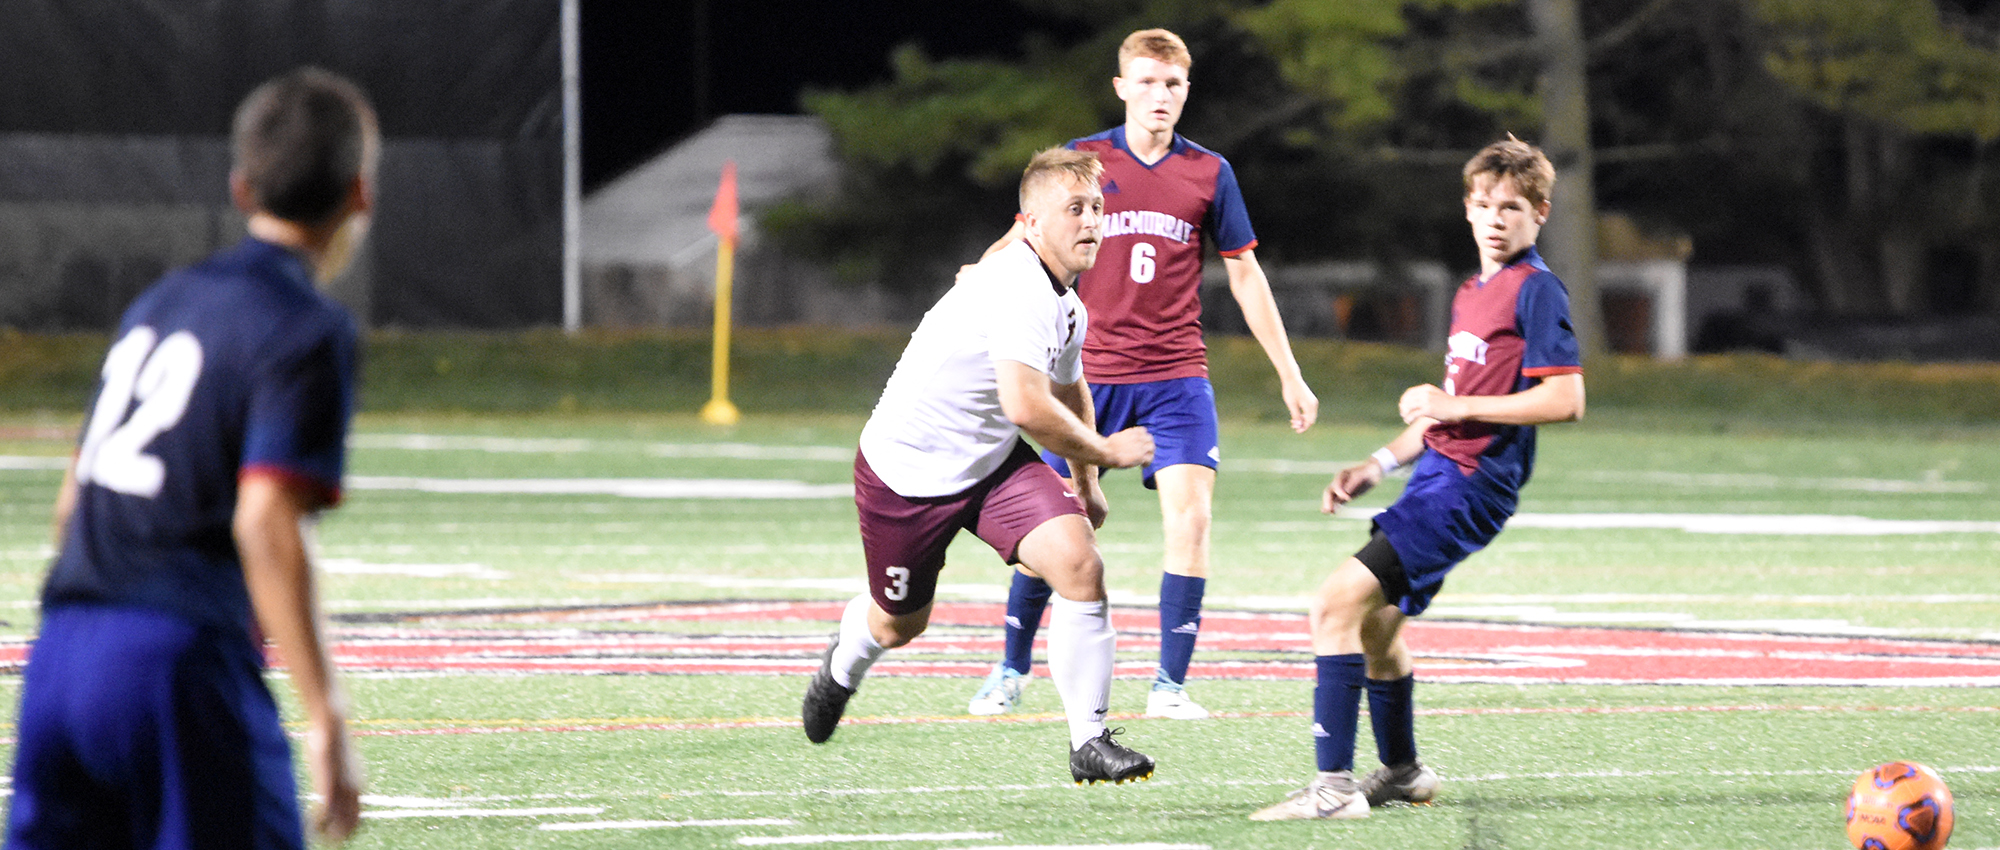 Eureka Falls to Webster, 5-0